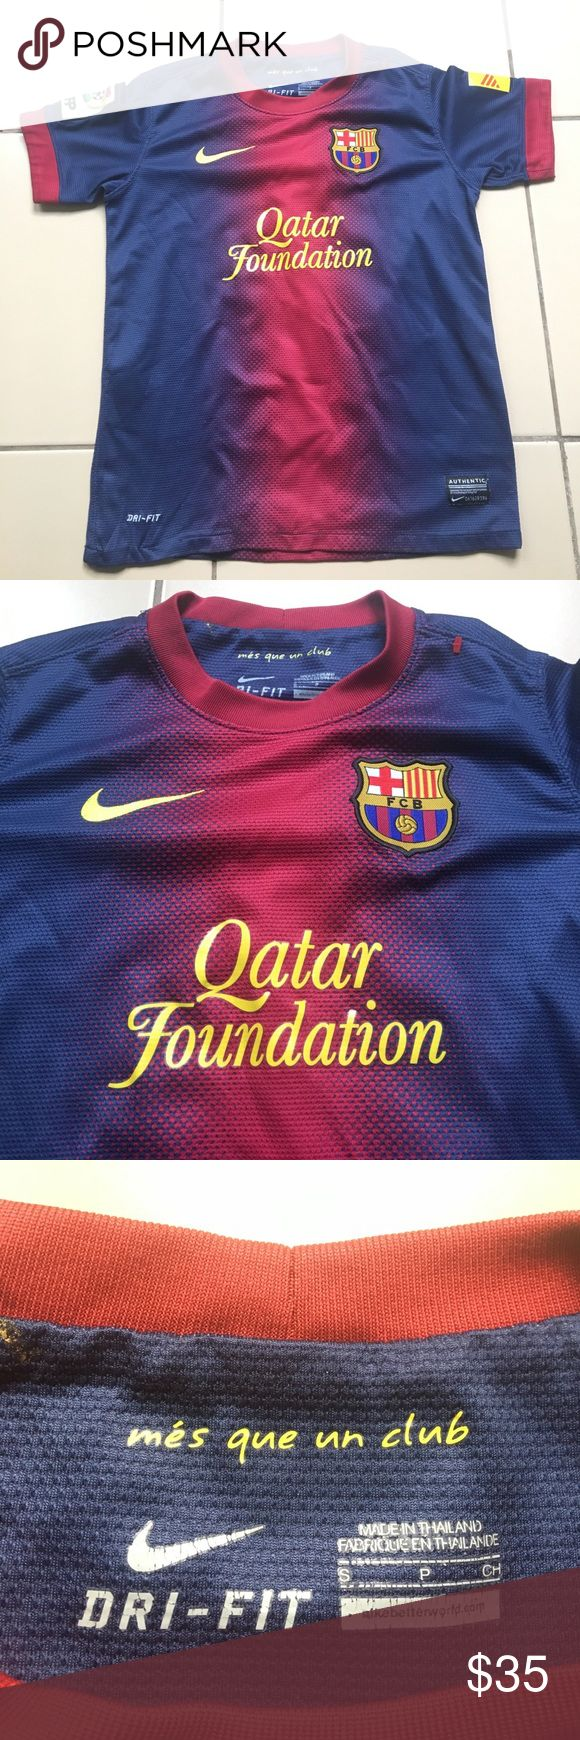 Nike FCB Futbol soccer jersey Messi 10 Small Youth Qatar Foundation Nike soccer jersey youth                   15 inches (pit to pit) 20 inches (length top to bottom)  Good pre owned condition!  No rips or stains!  Please see picture for details.  Size Small youth  If additional pictures are needed feel free to ask. Nike Shirts & Tops Tees - Short Sleeve